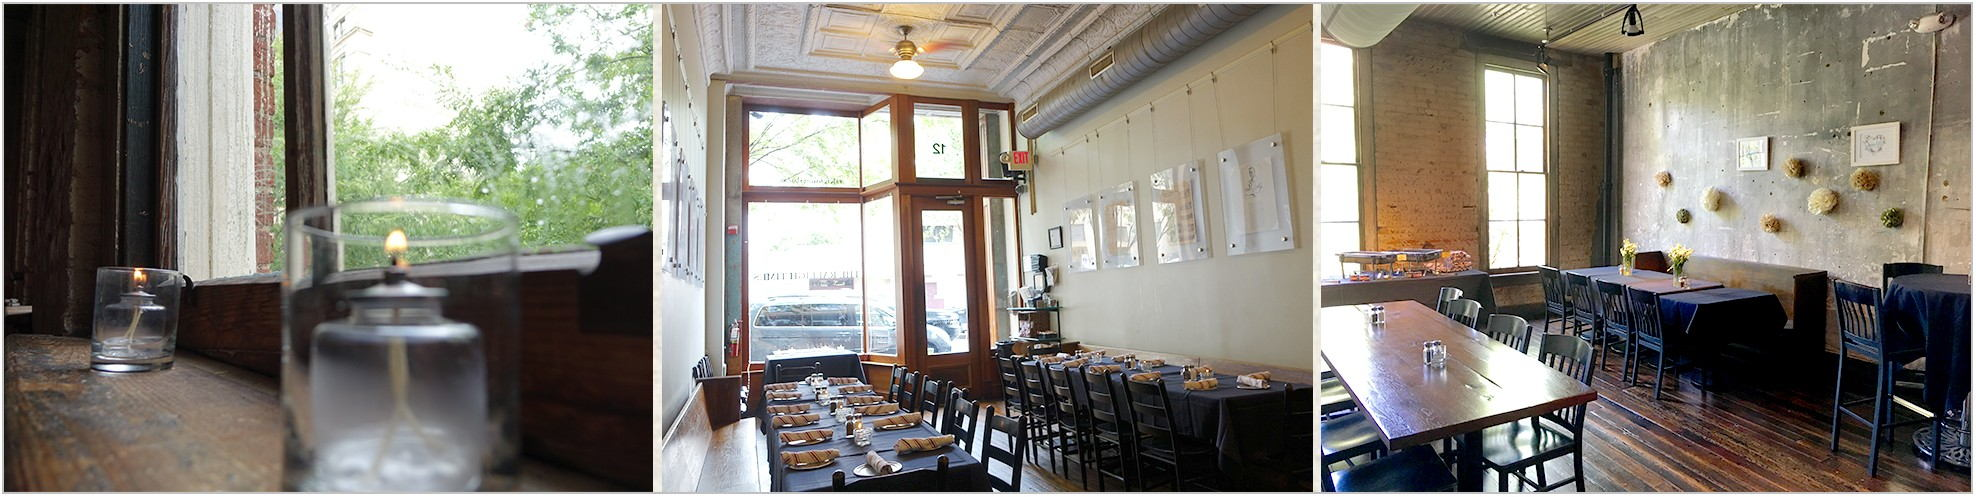 Restaurants With Private Dining Rooms Raleigh Nc